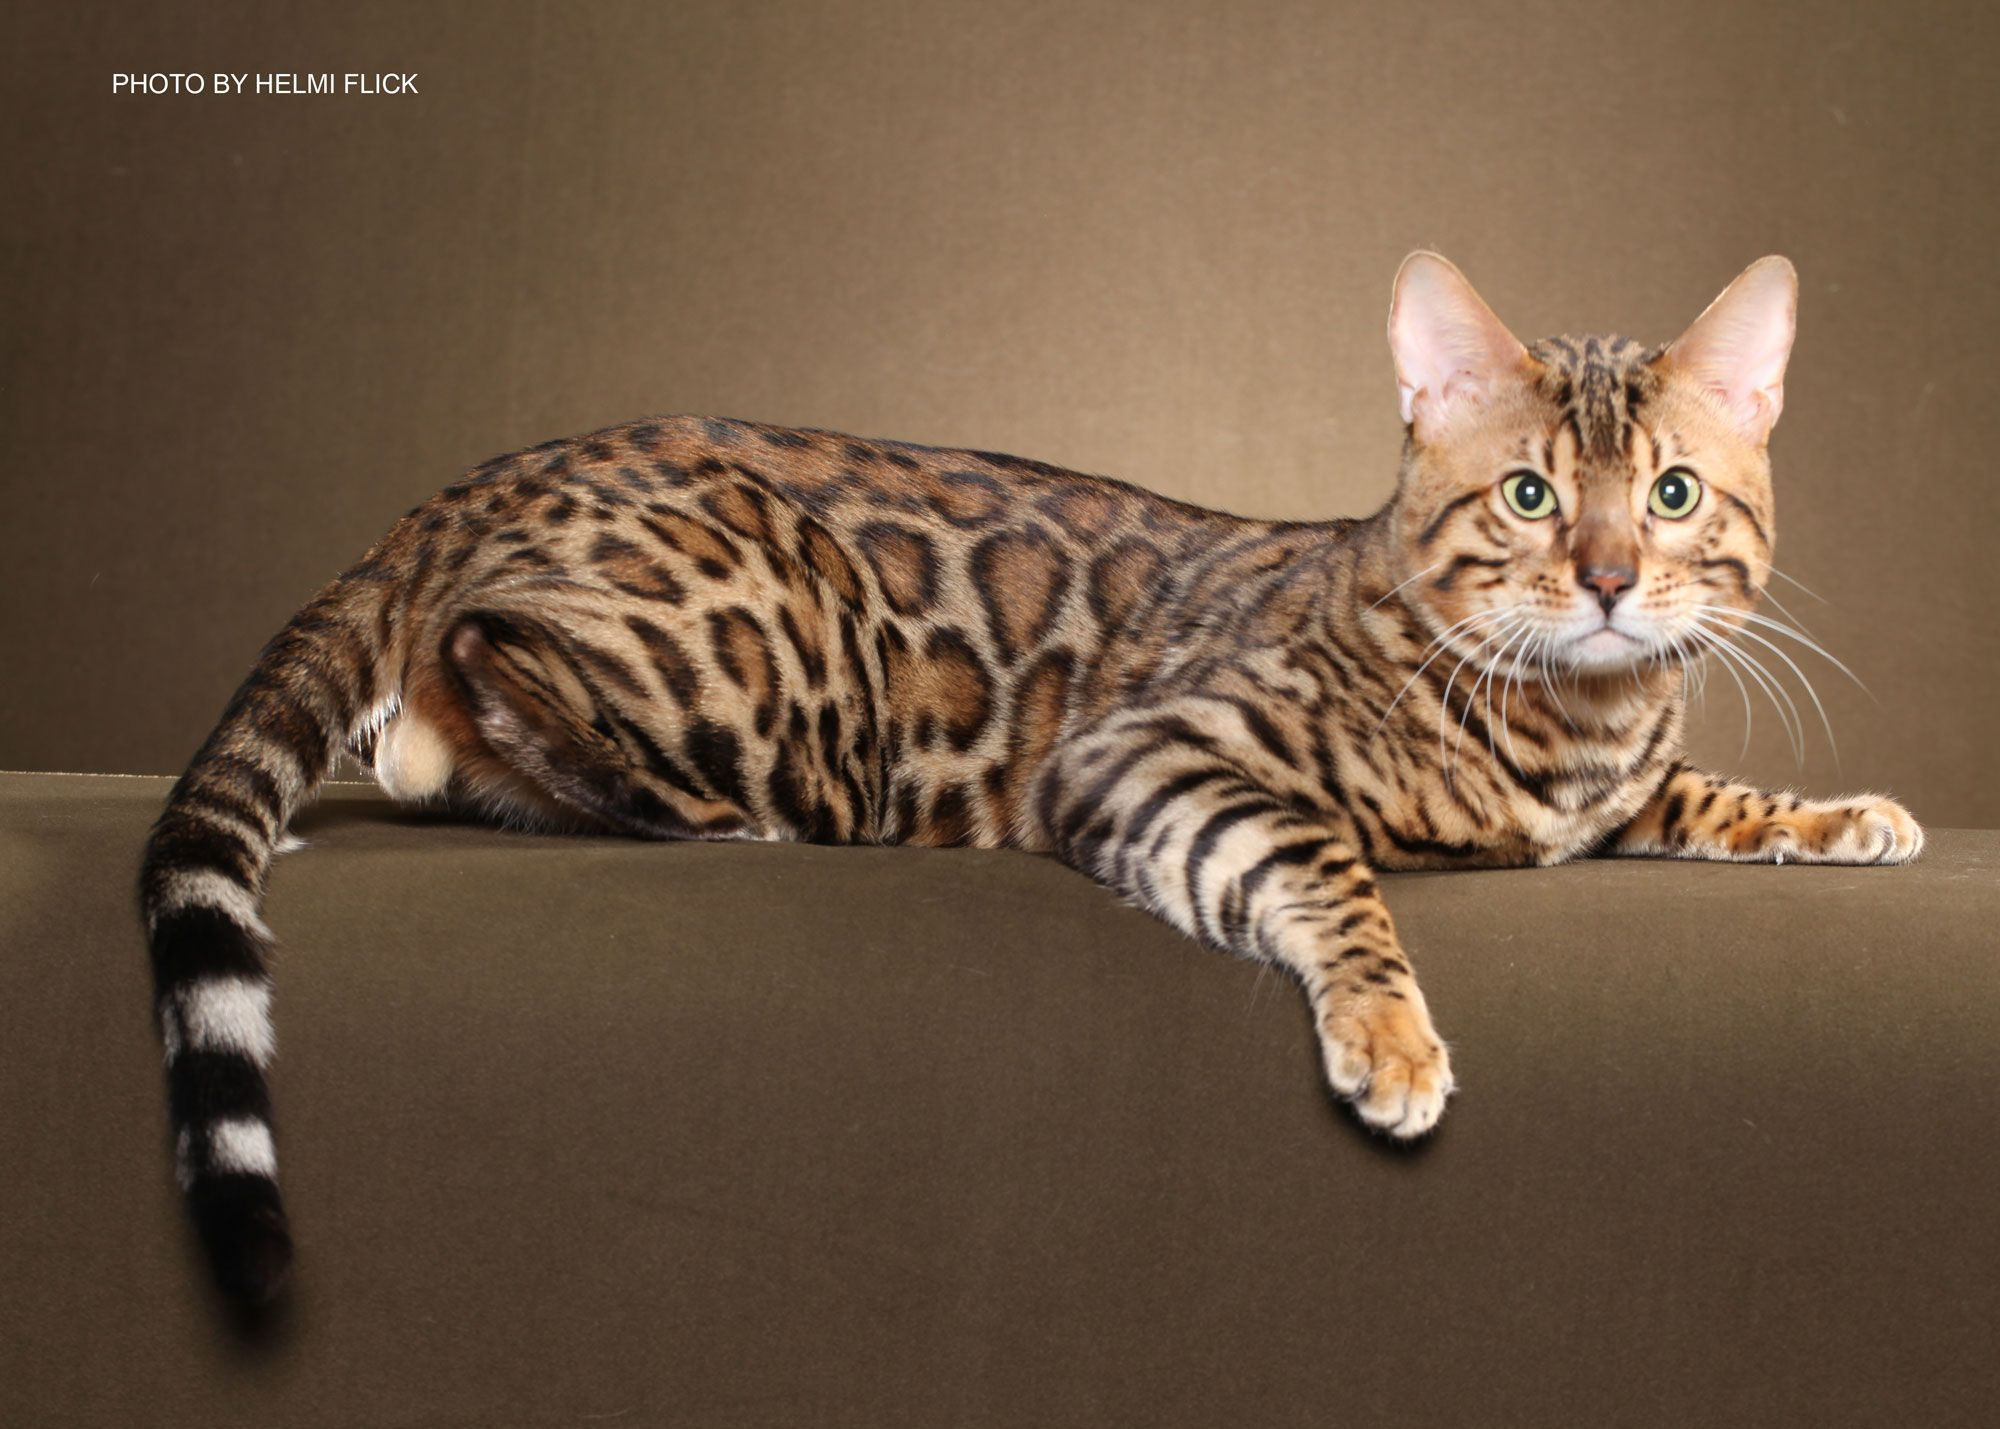 Rare Cat Breeds | Rare Domestic Cat Breeds | www.galleryhip.com ...